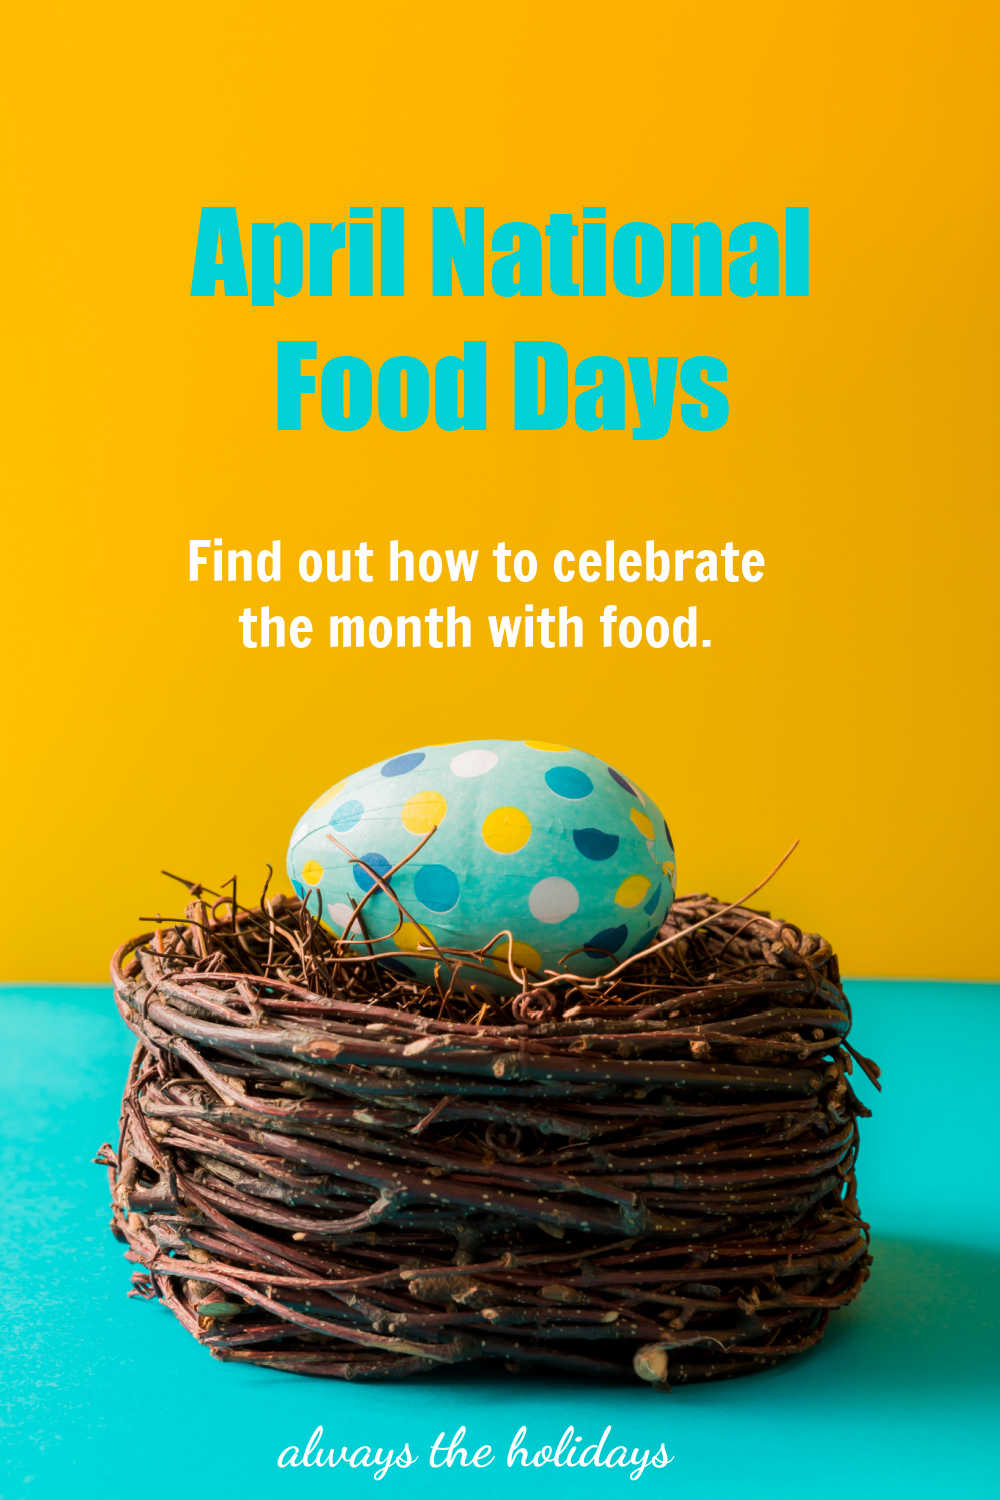 Easter egg in a bird nest with text reading April national food days - how to celebrate the month with food.